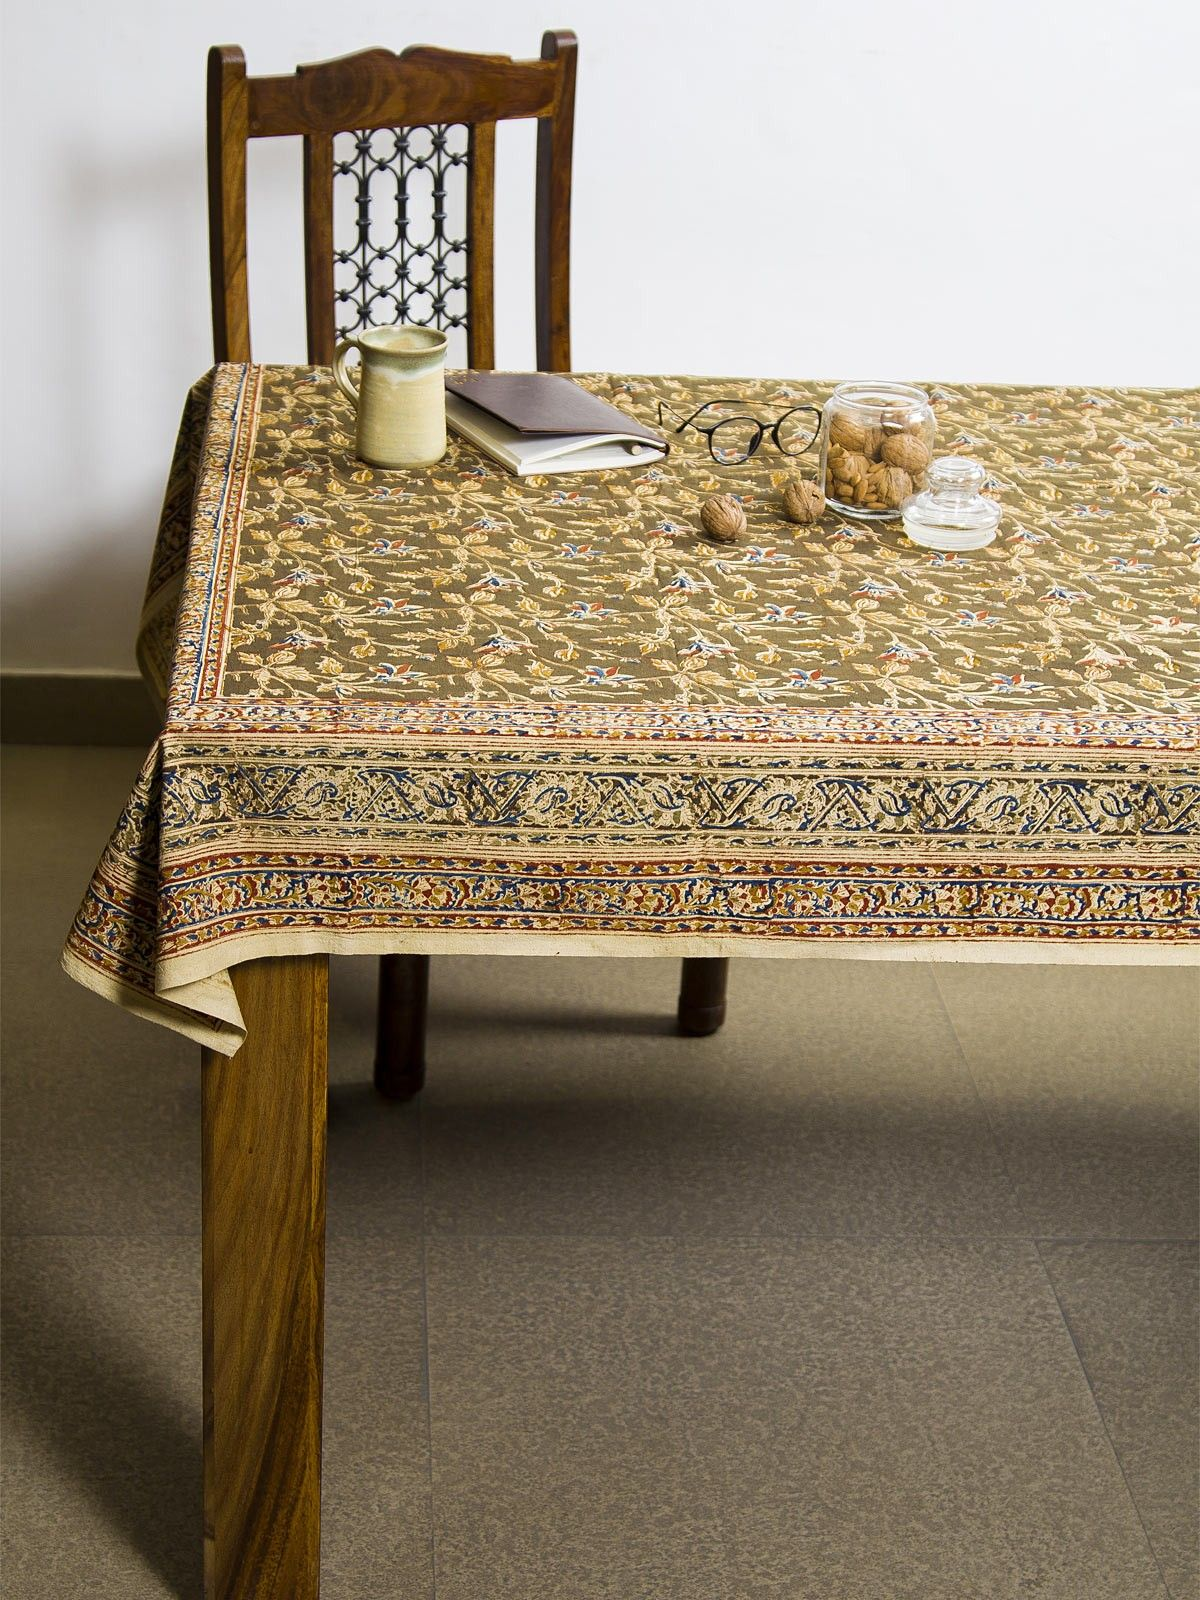 Mustard Ranha Kalamkari 4 seater table cover